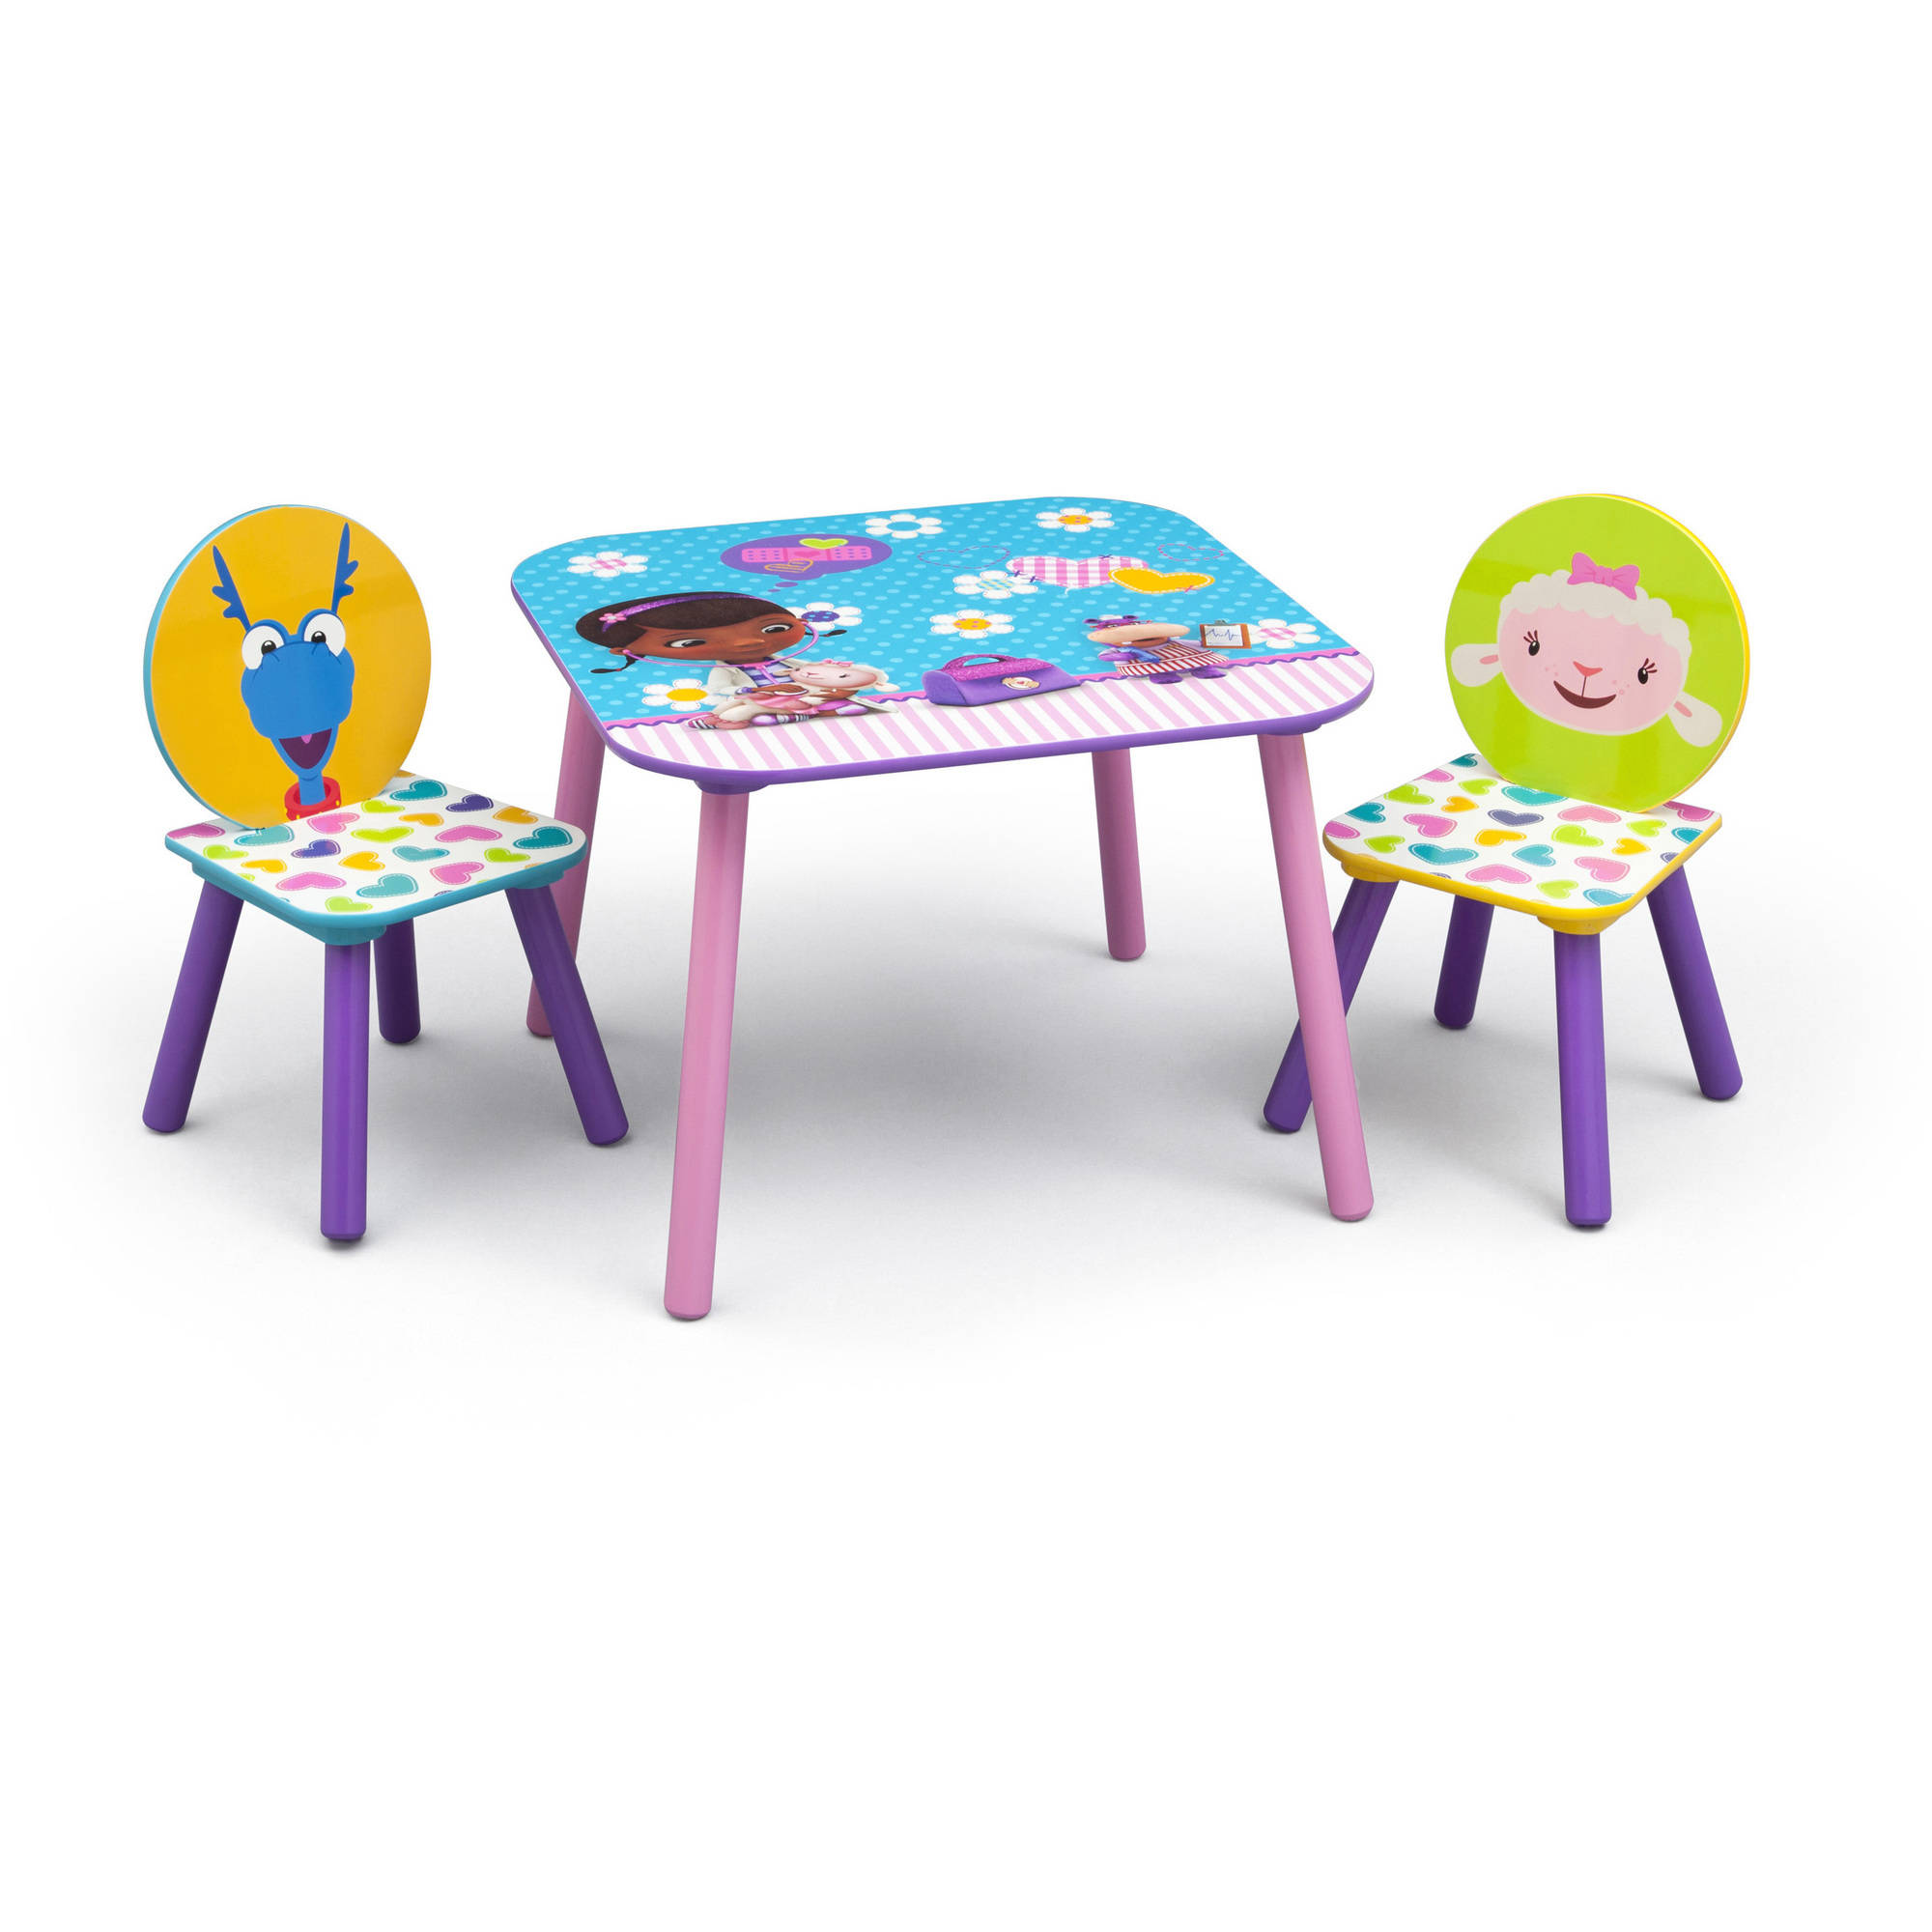 Disney Jr. Doc McStuffins Table and Chairs Set, Multi-Color